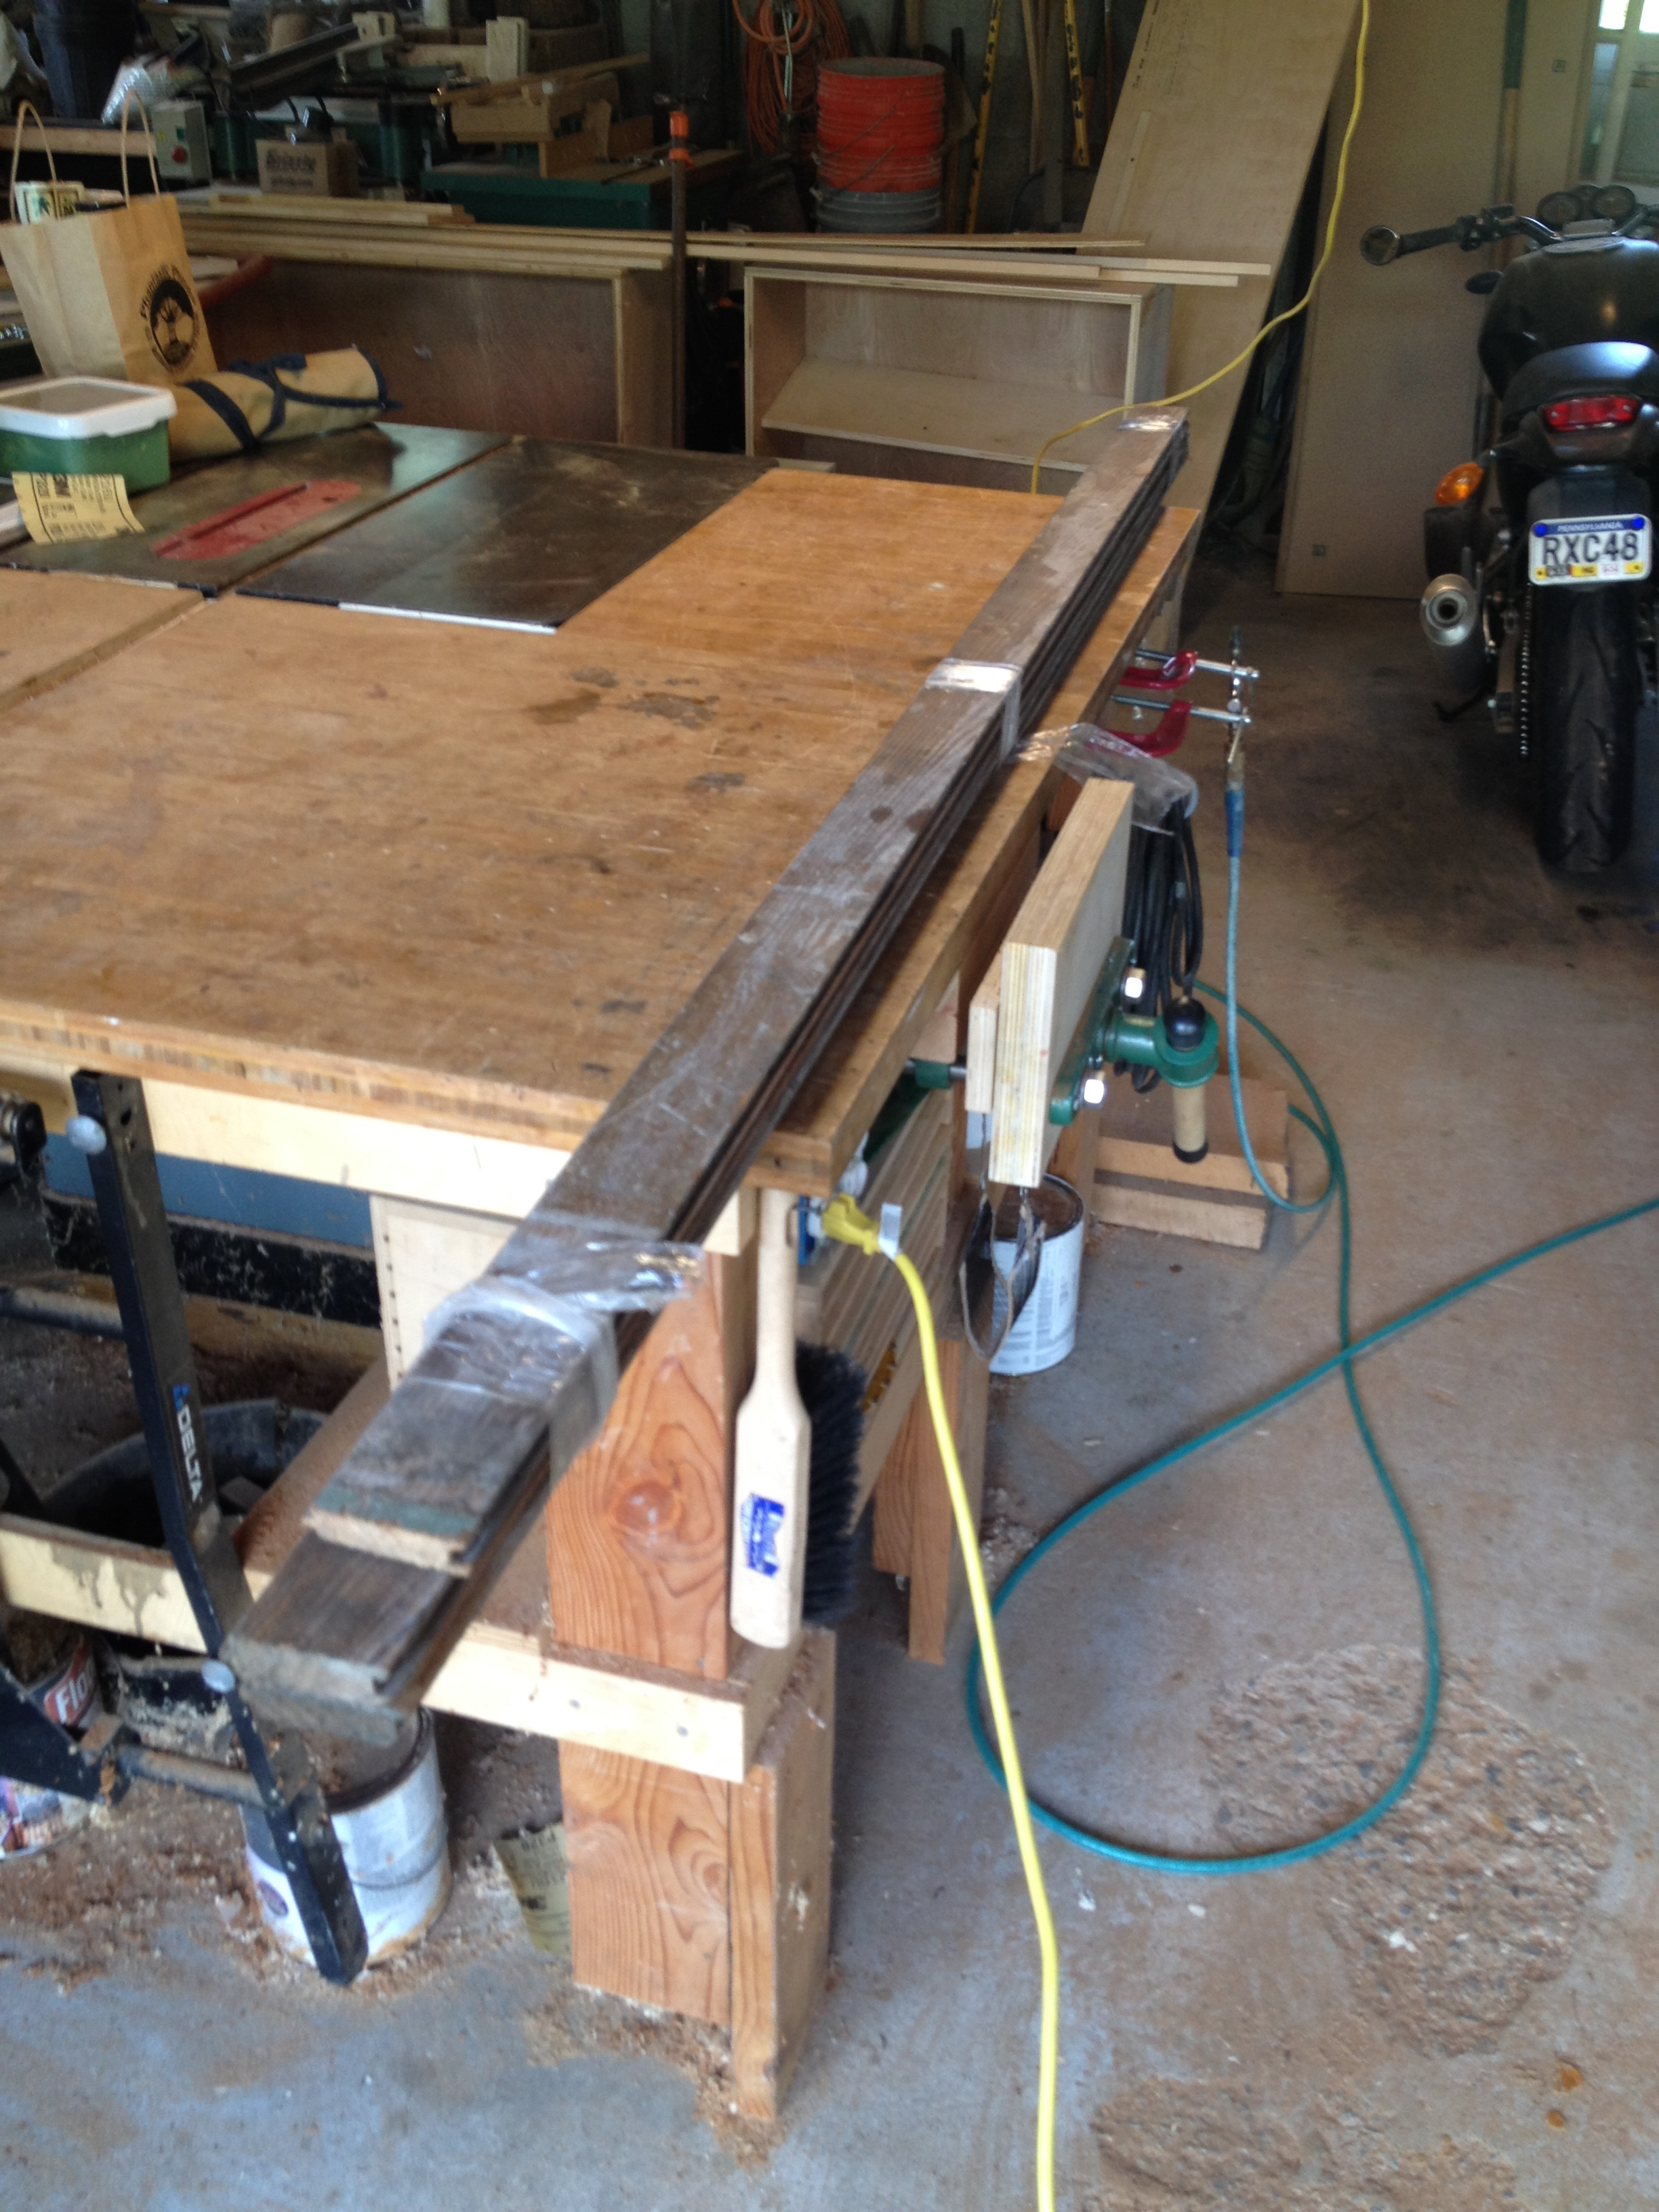 A client asked me to make a table top for an antique treadle base. She wanted to use reclaimed lumber, so we took a trip to the architectural salvage yard and found a bundle of old tongue-and-groove flooring.